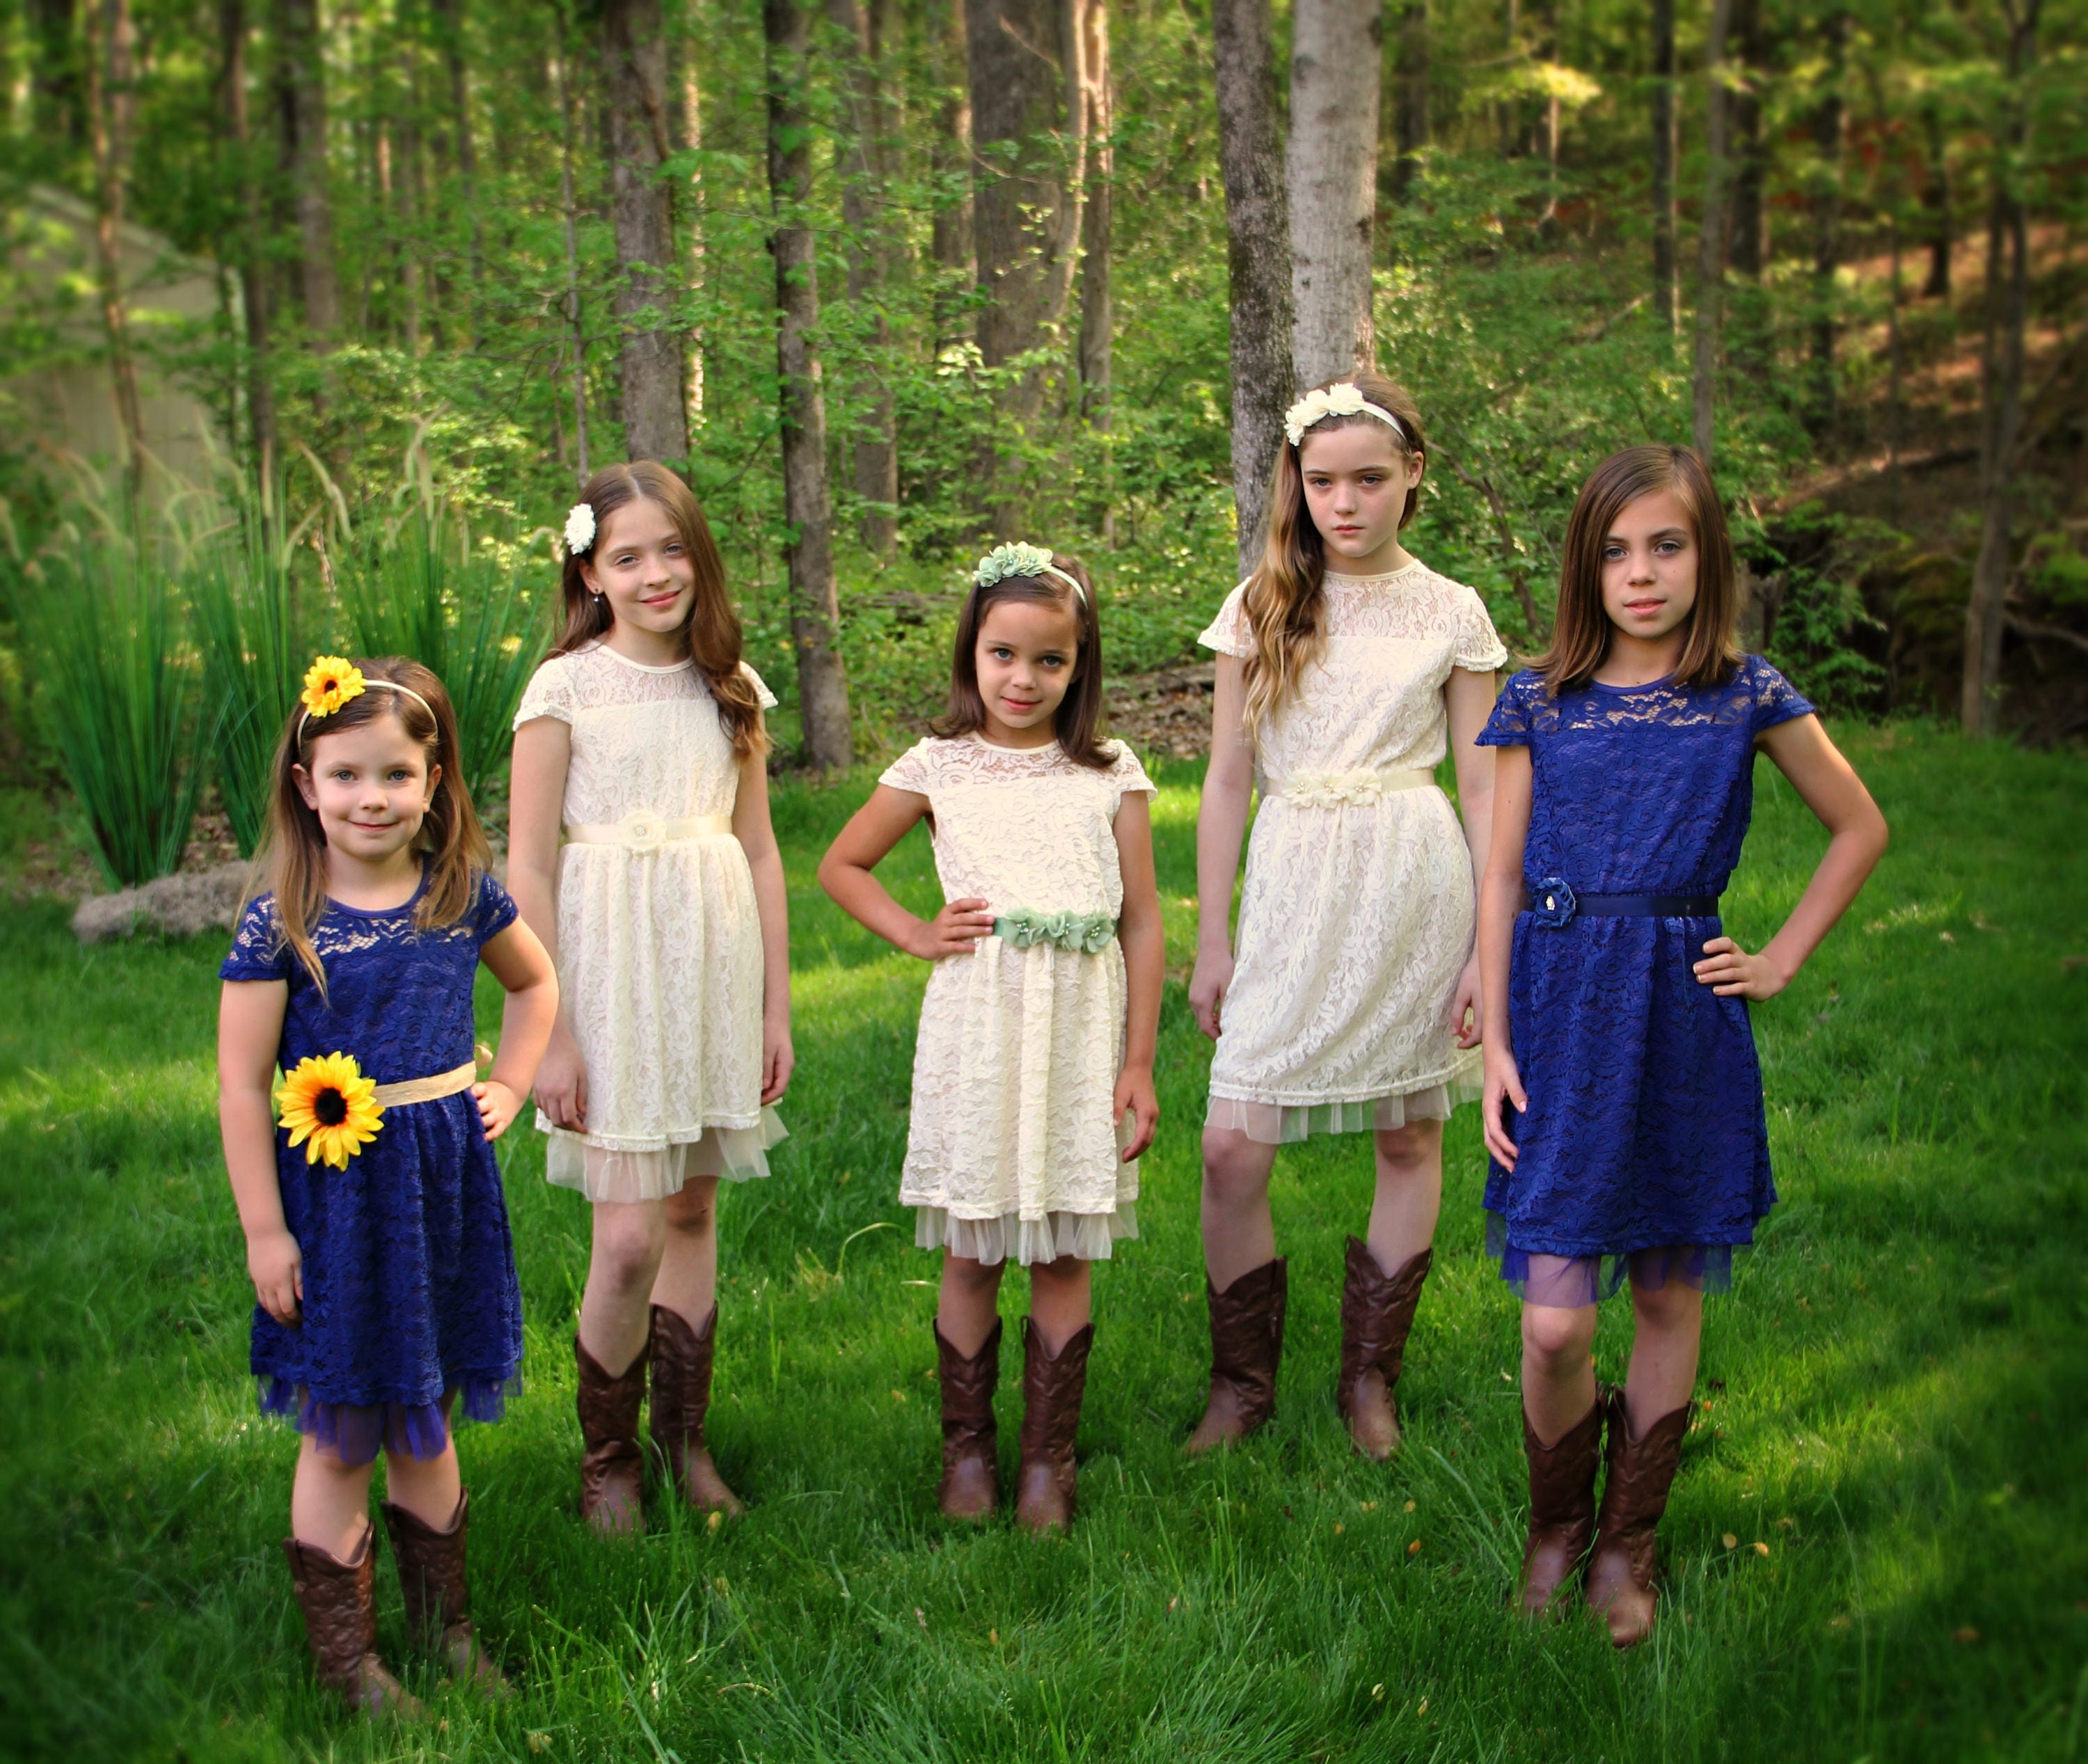 Flower girl dress rustic flower girl dress navy ivory coral jr flower girl dress rustic flower girl dress navy ivory coral jr bridesmaid dress black ivory country ombrellifo Images